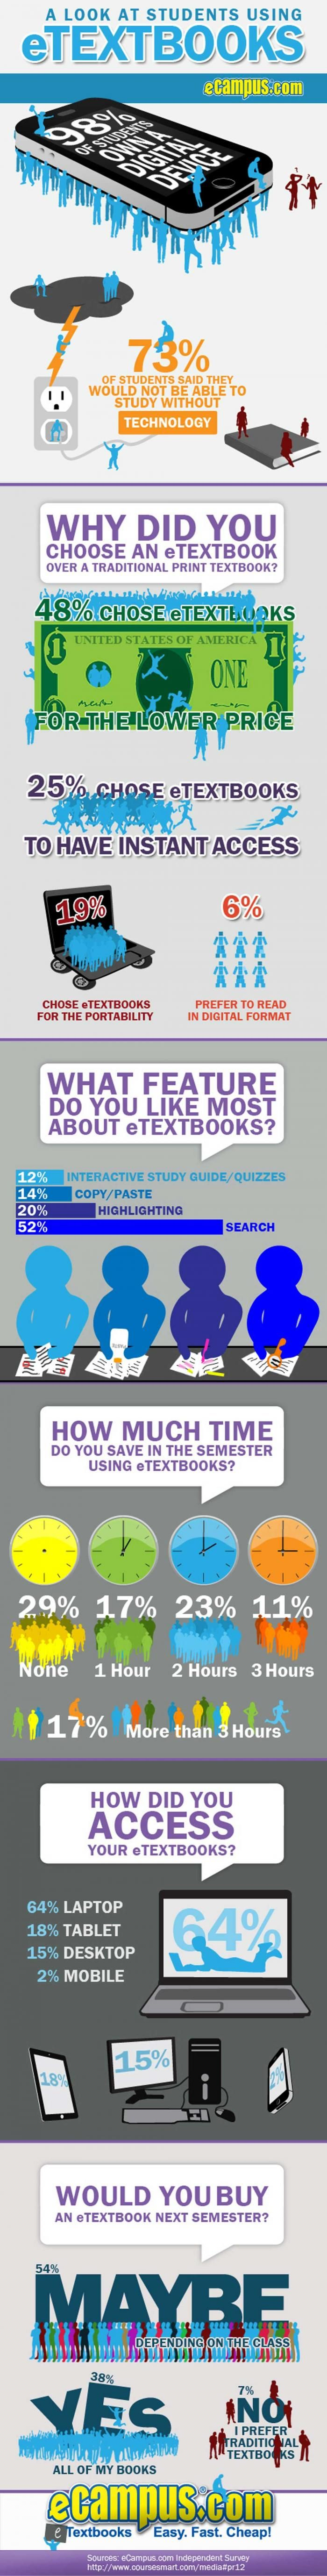 The Battle Between Etextbooks And Print Textbooks Will Traditional  Survive?